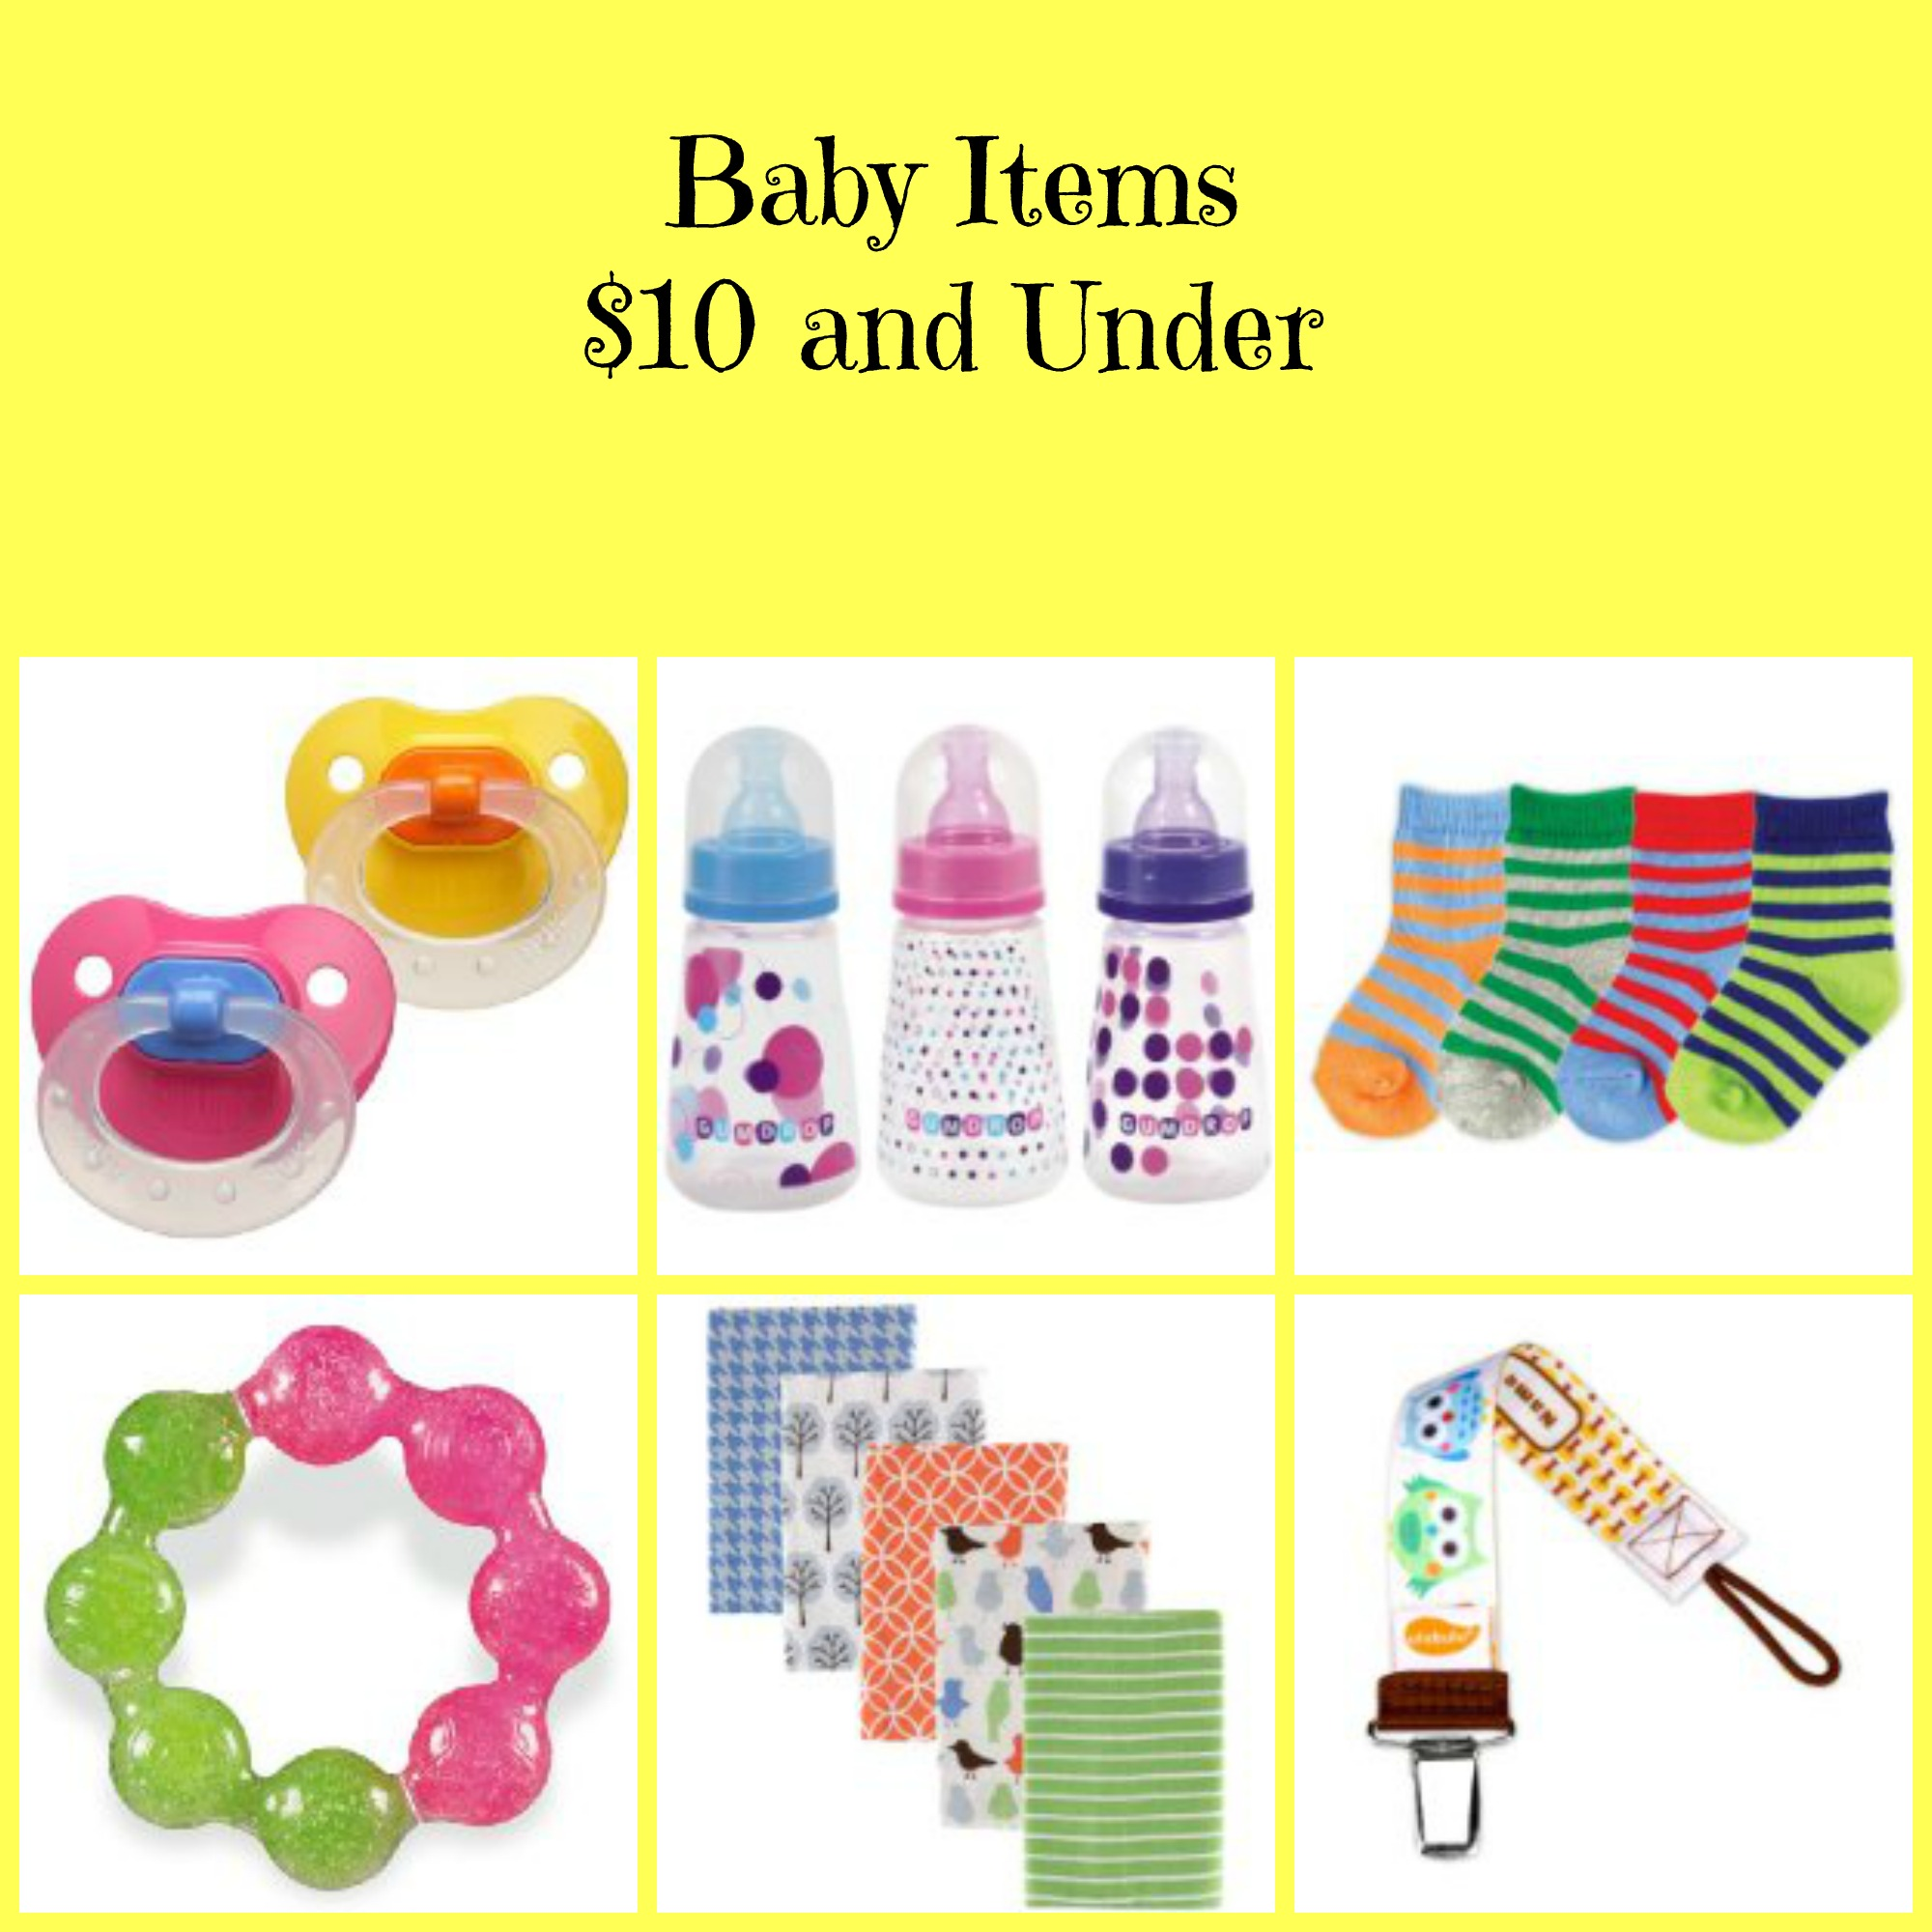 Baby Items Under 10 Bucks! - BB Product Reviews